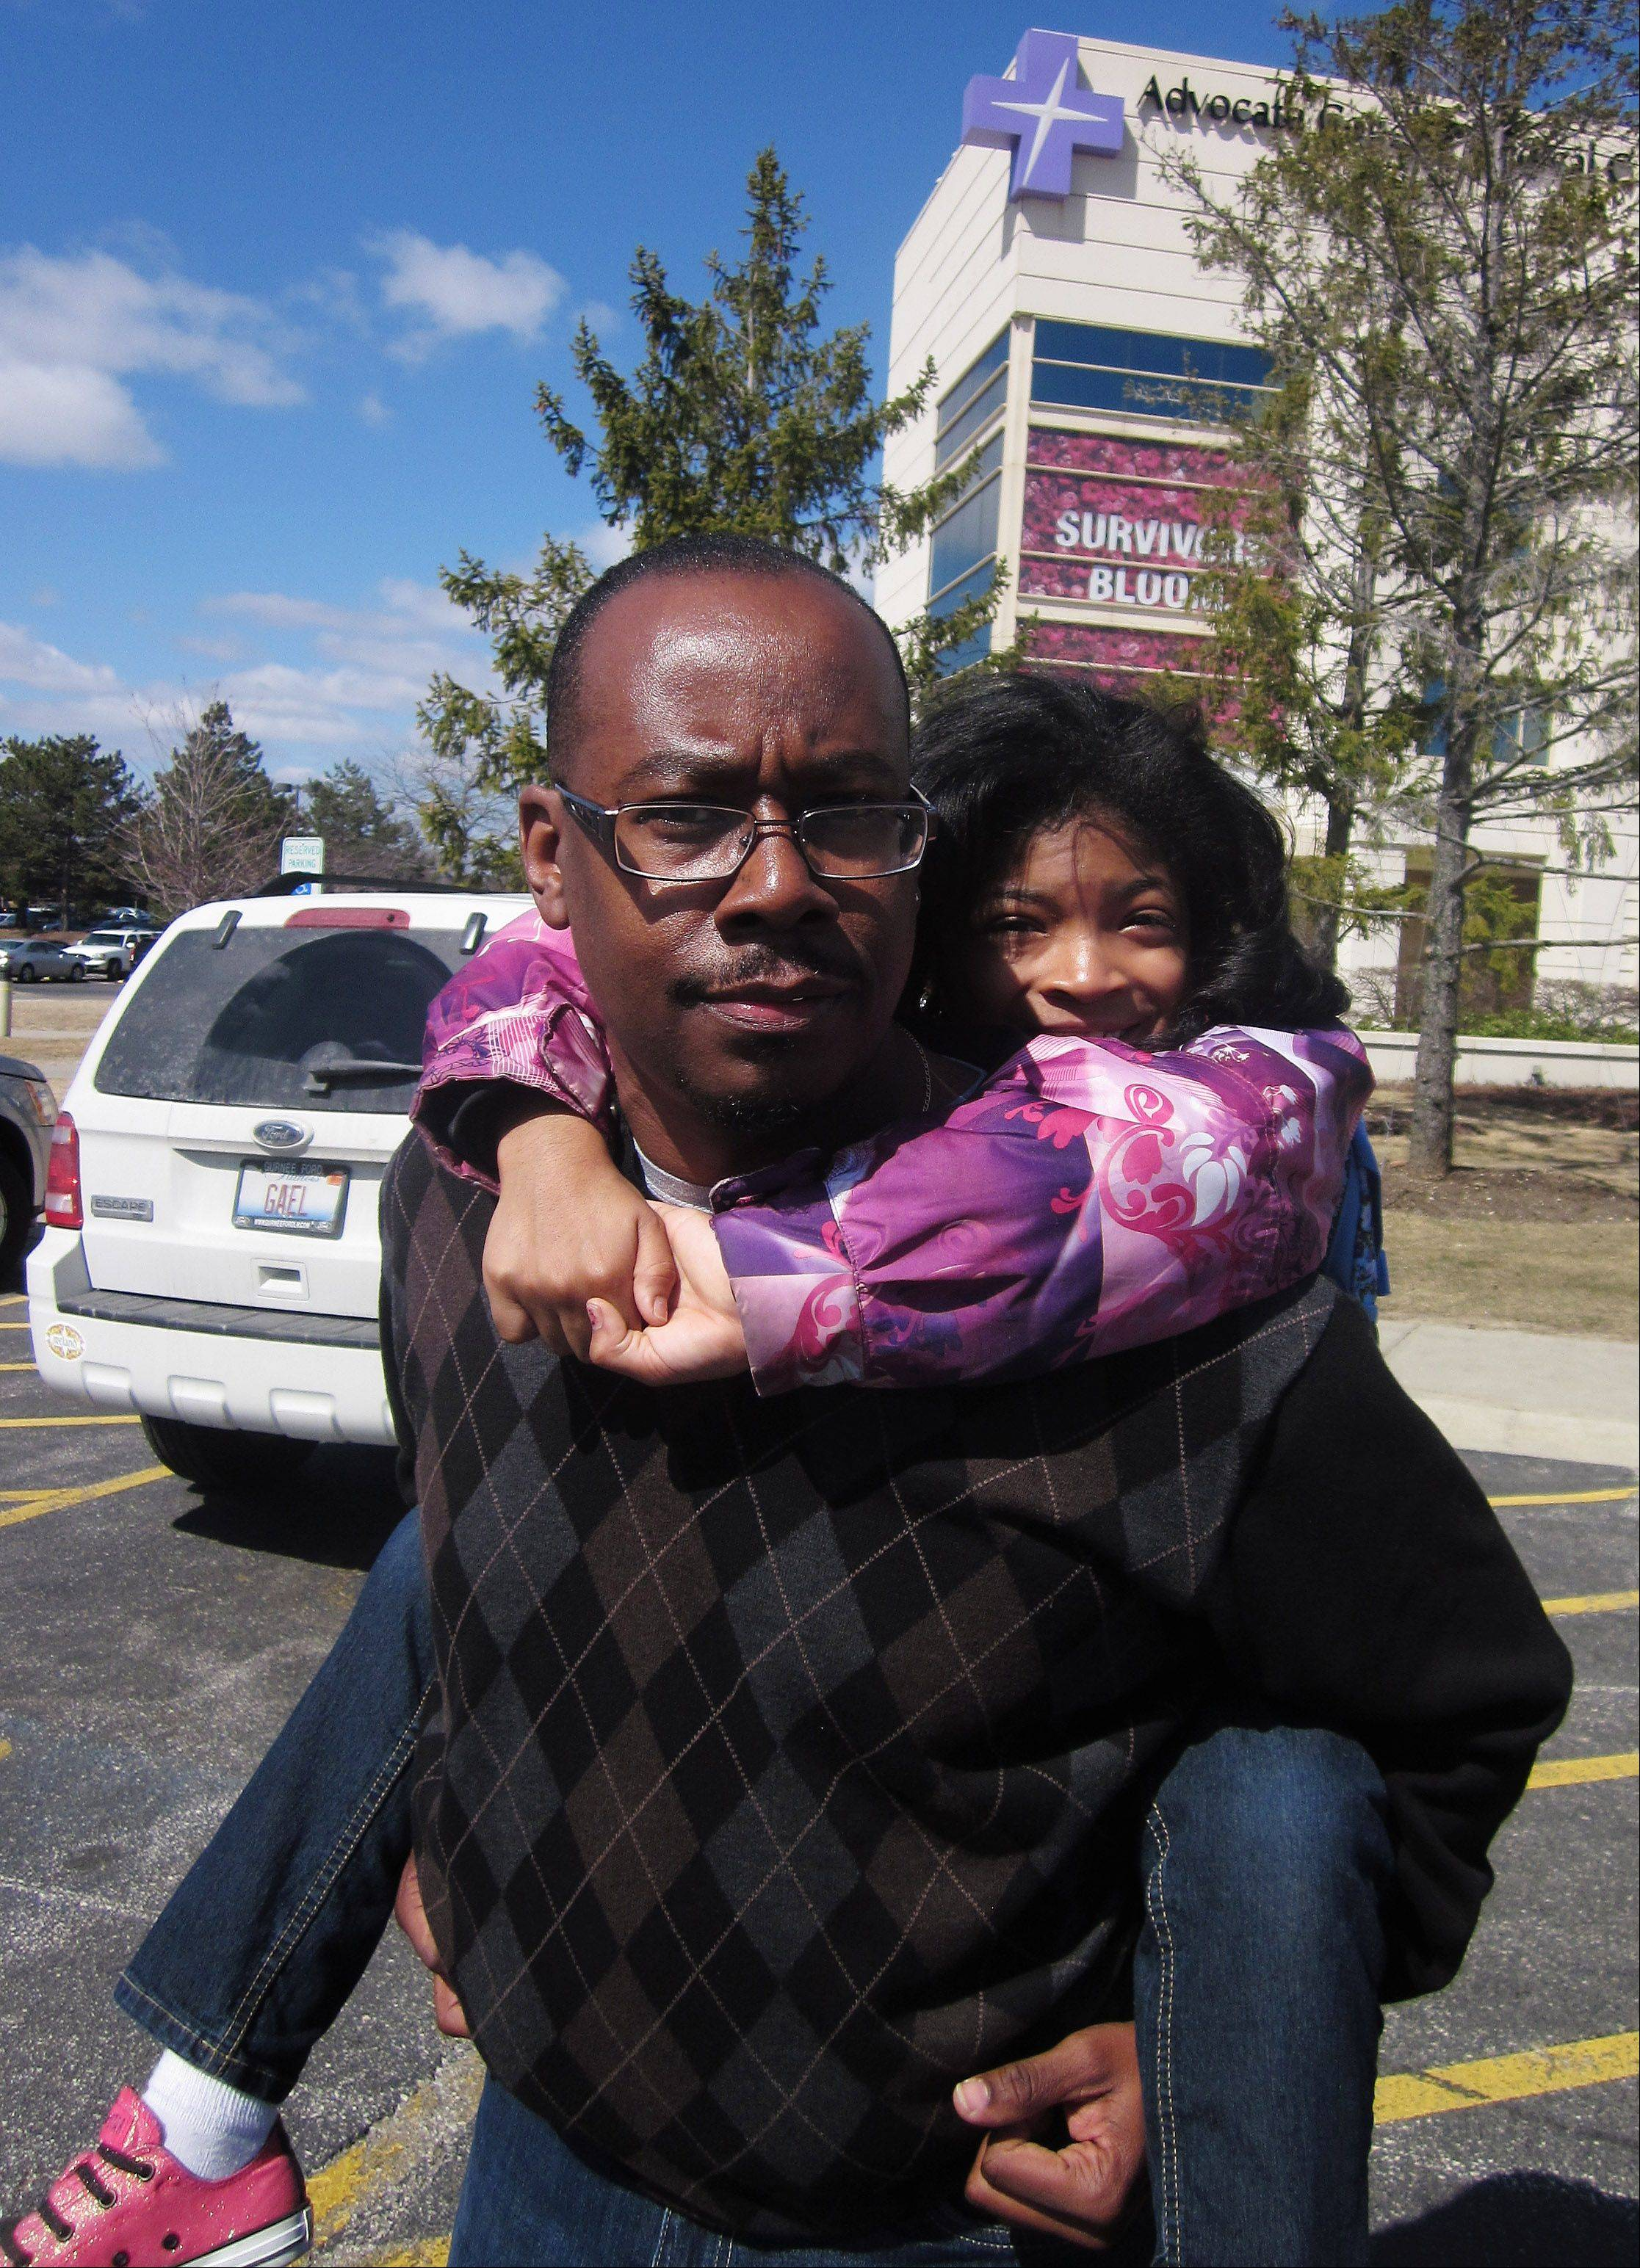 Cliff Smith of Zion carries his daughter Mariah, 8, after they were reunited at Advocate-Condell Medical Center in Libertyville. She was a passenger on the school bus involved in a crash near Wadsworth.